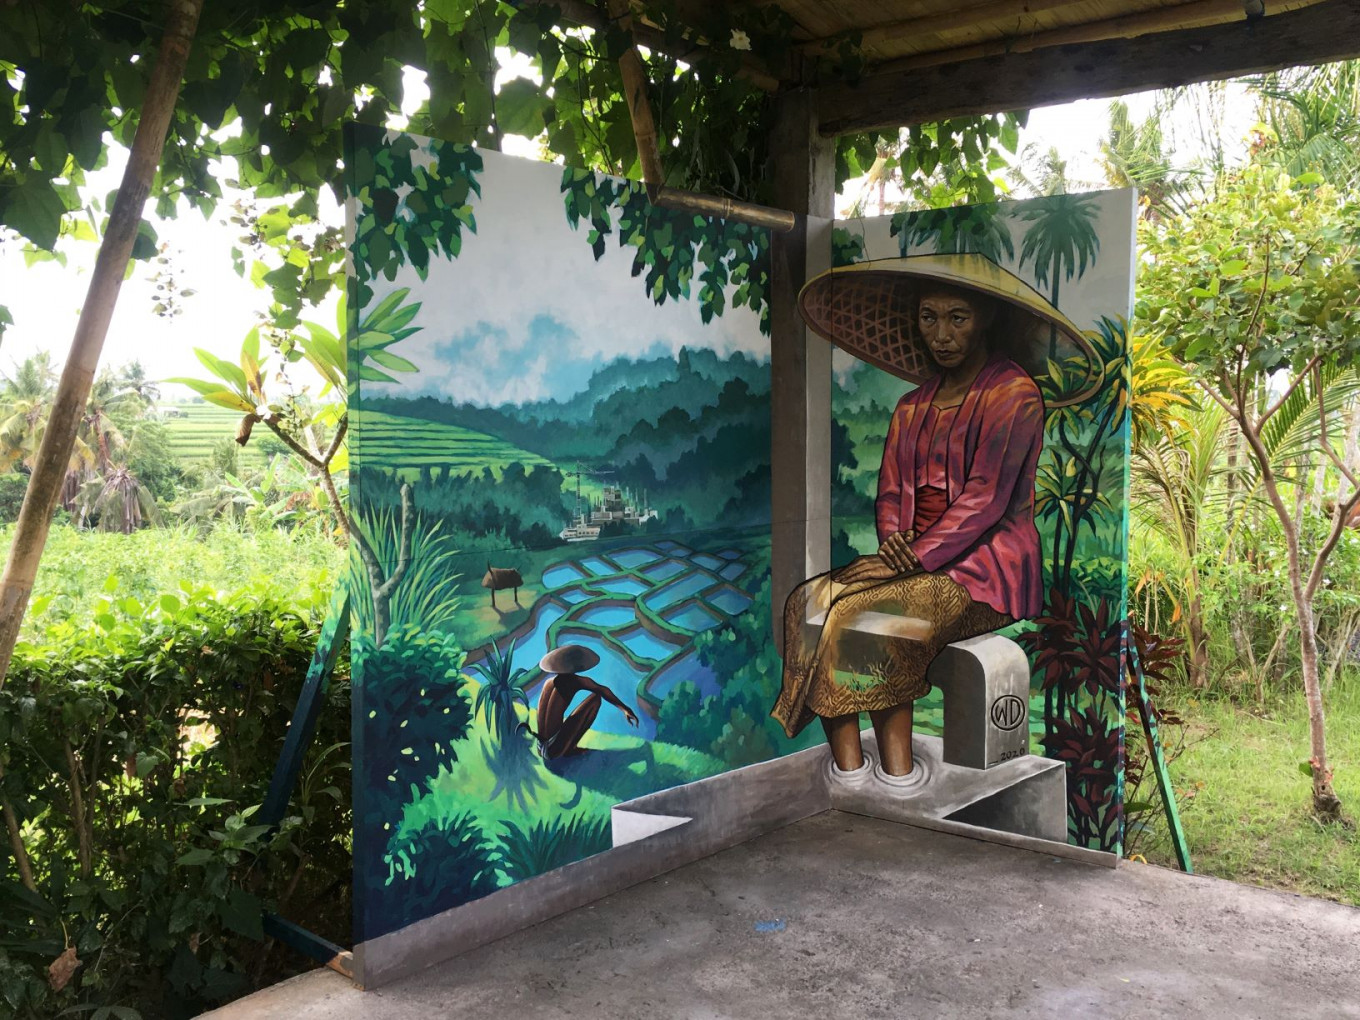 Globe-trotting muralist captures public imagination, one wall at a time